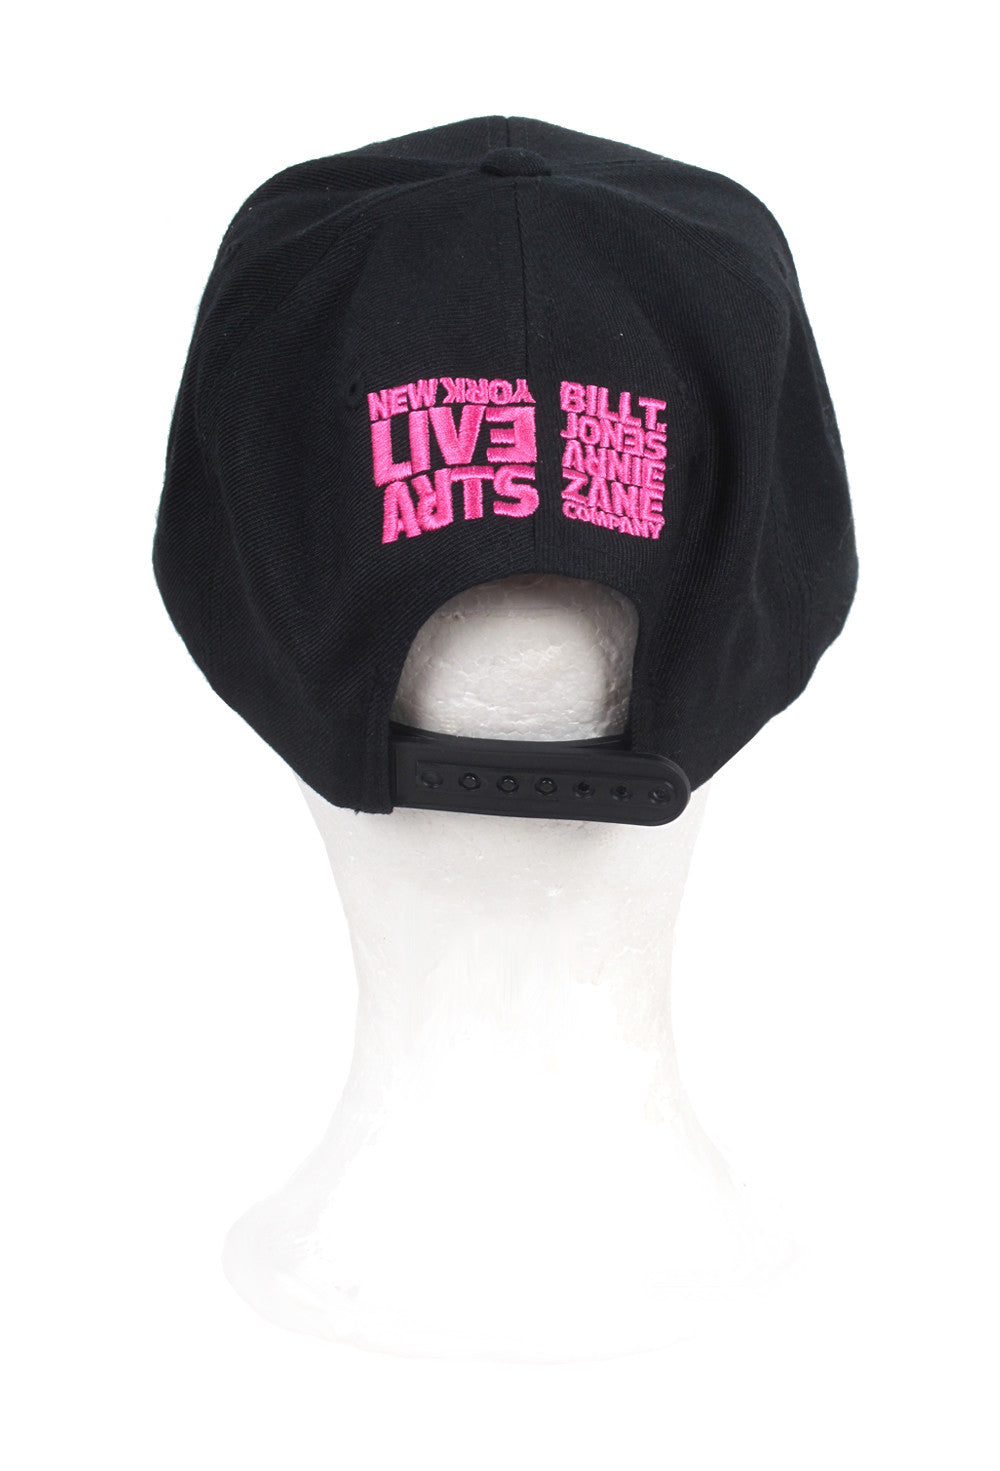 PRETTY Snapback Cap From NEW YORK LIVE ARTS